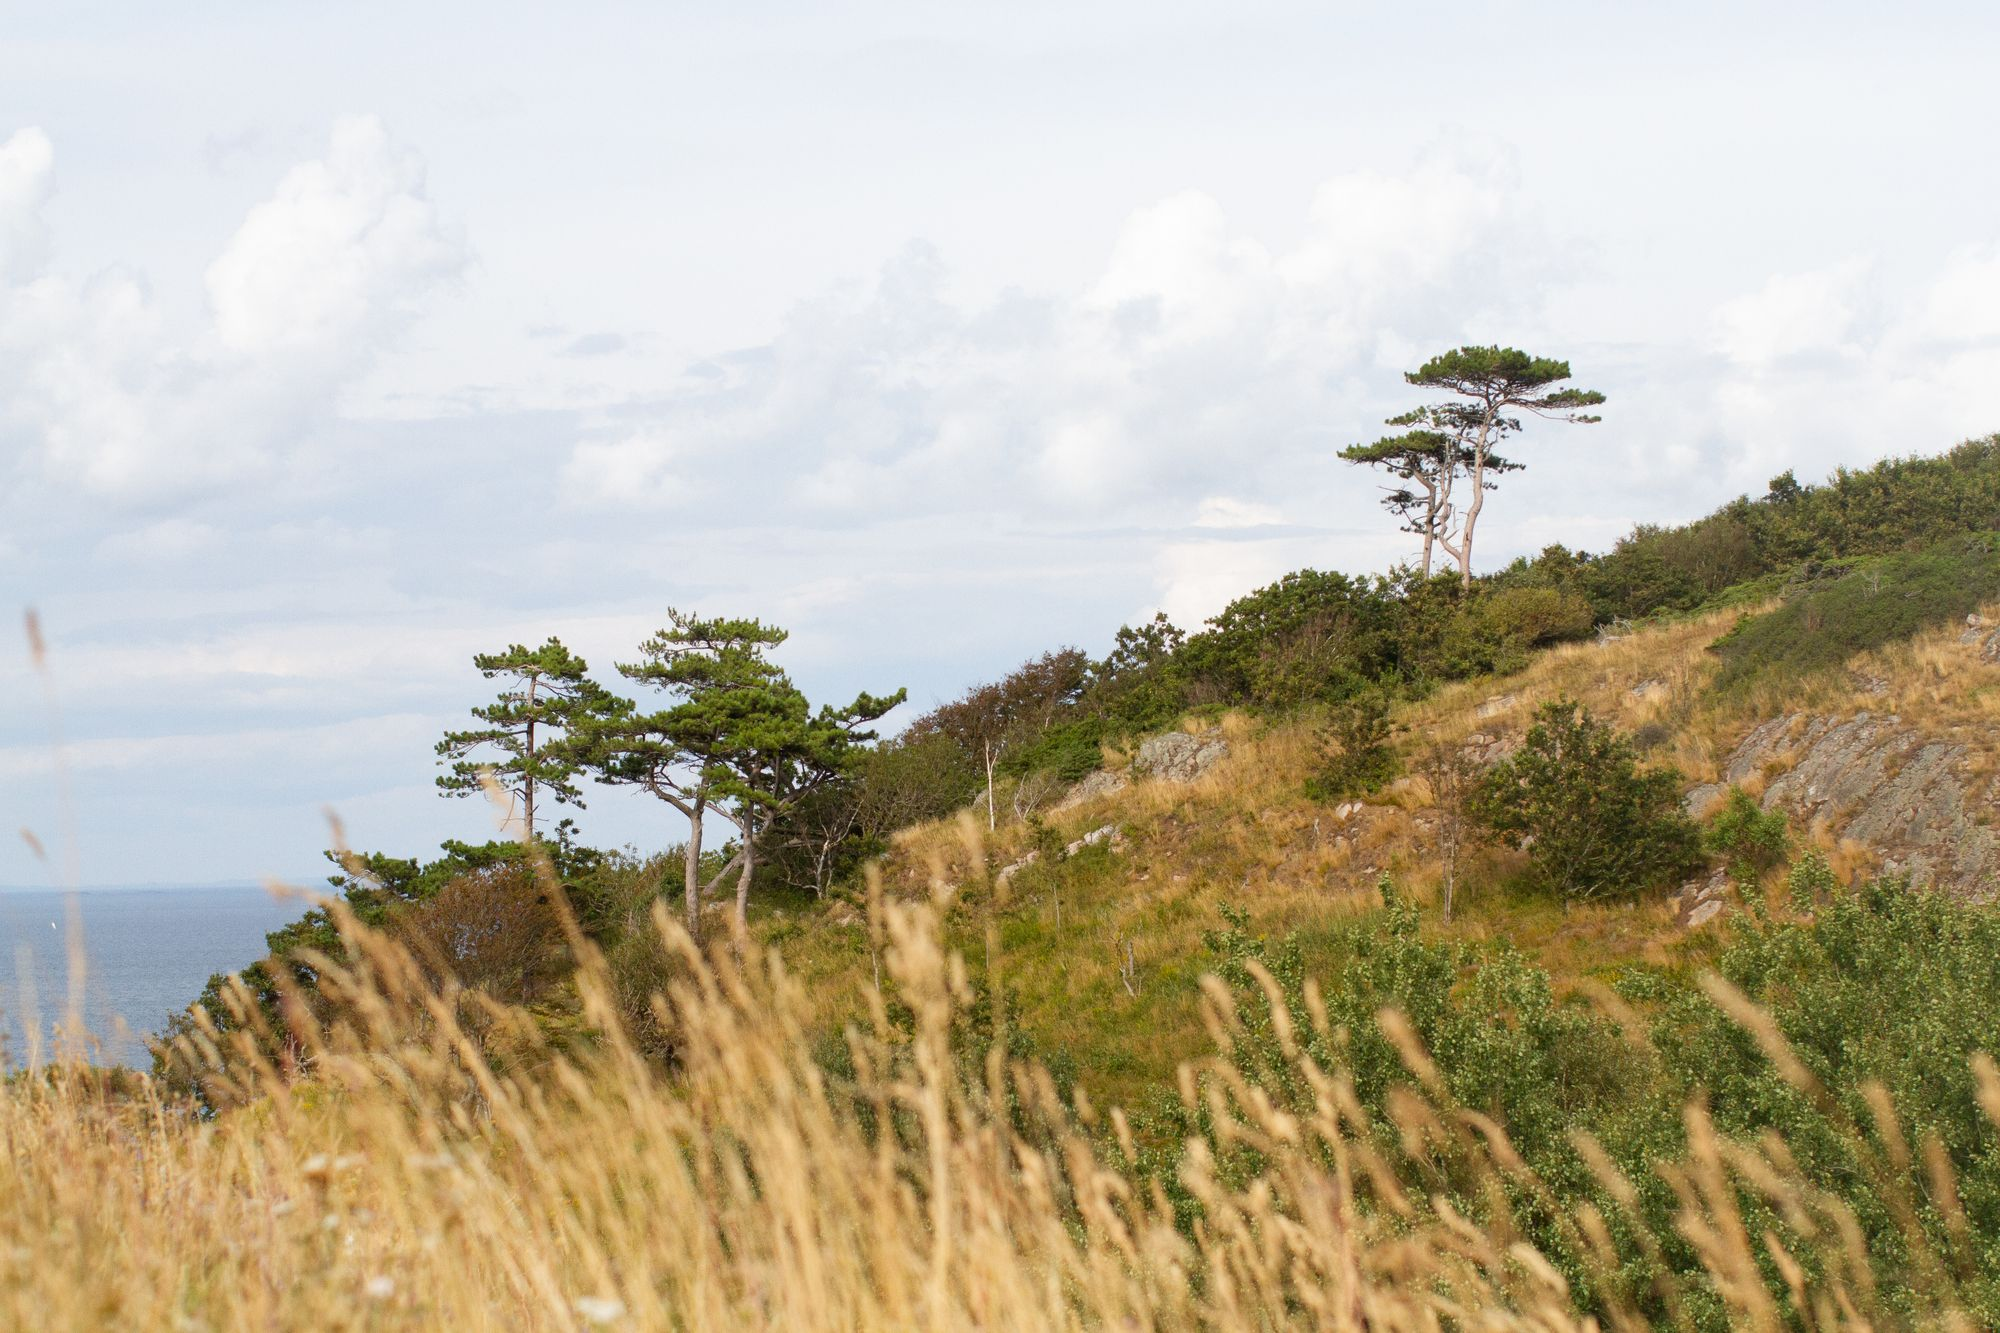 Scenery of the hill side and ocean at Kullaberg.